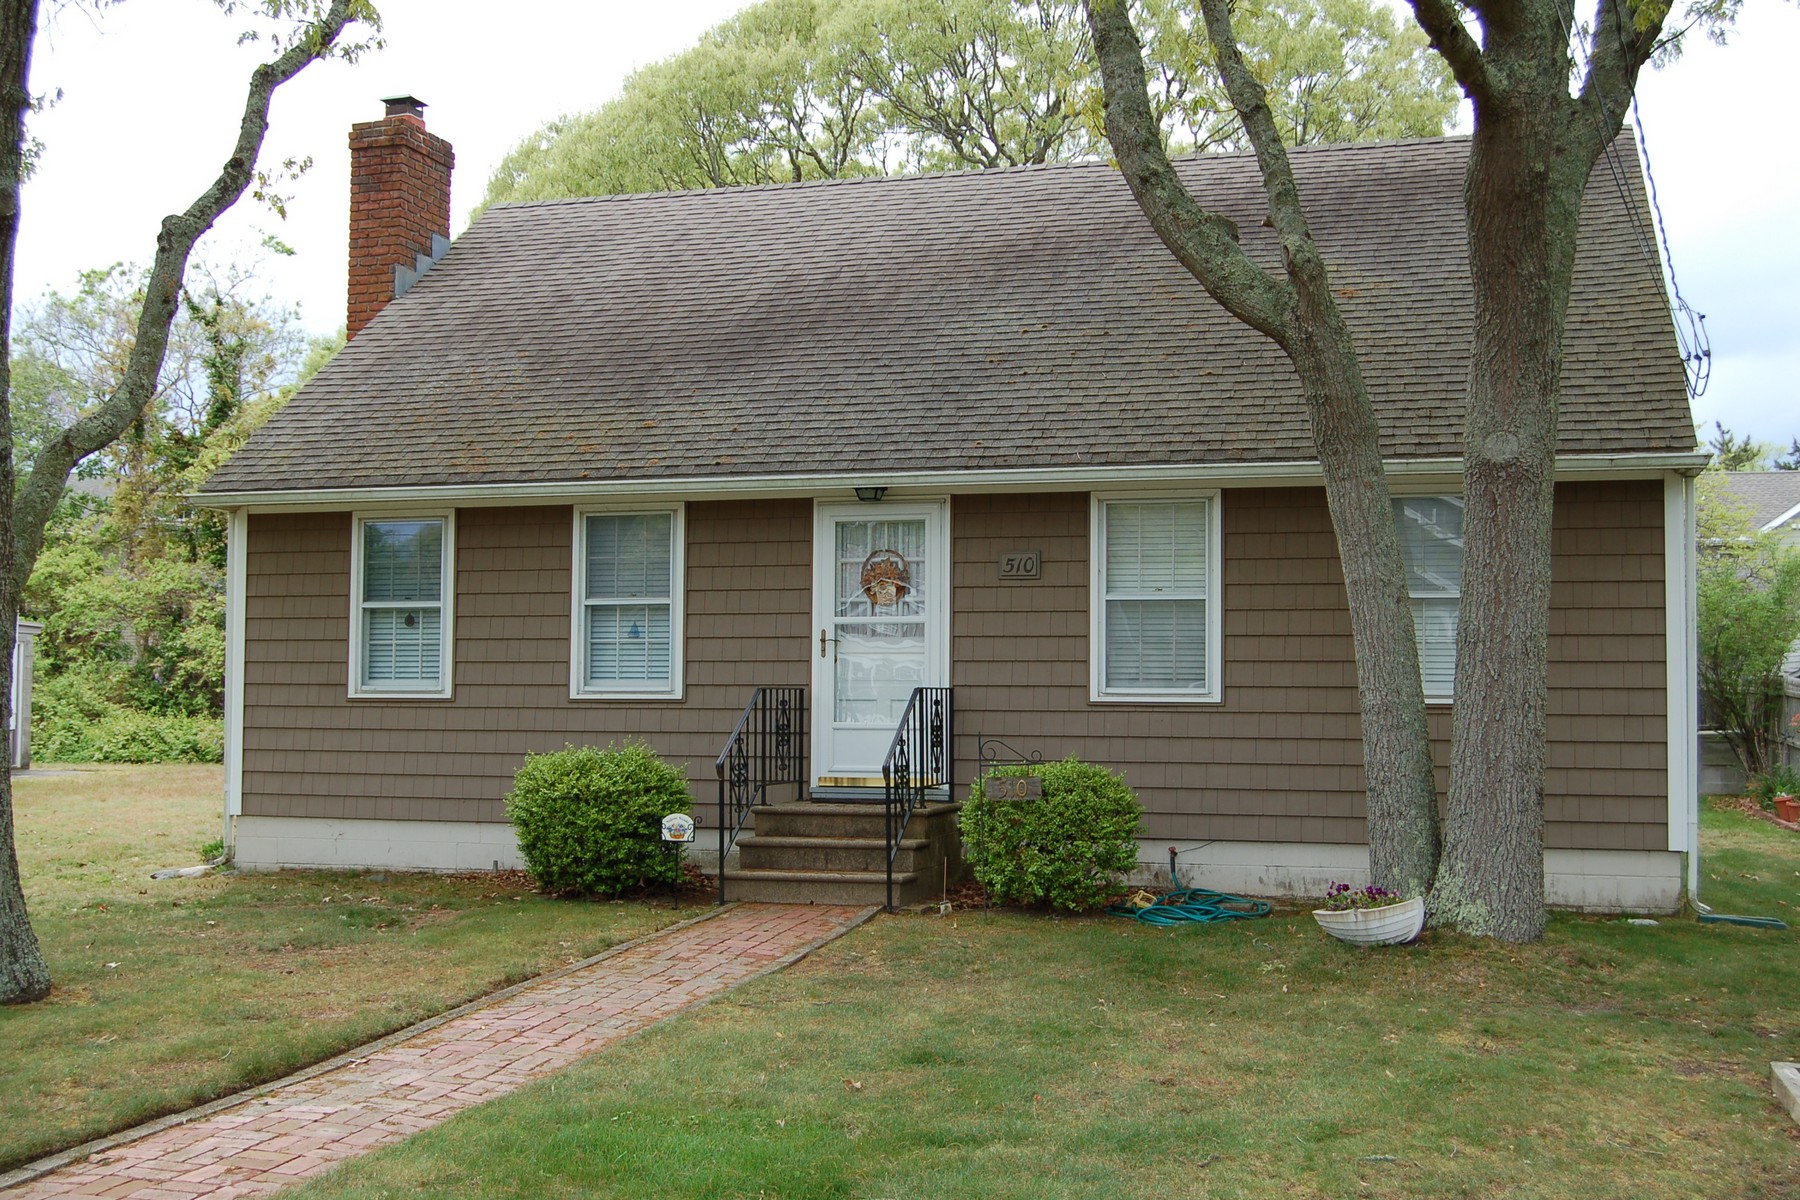 Single Family Home for Sale at Cape May Point Home 510 Cape Avenue Cape May Point, New Jersey 08212 United States